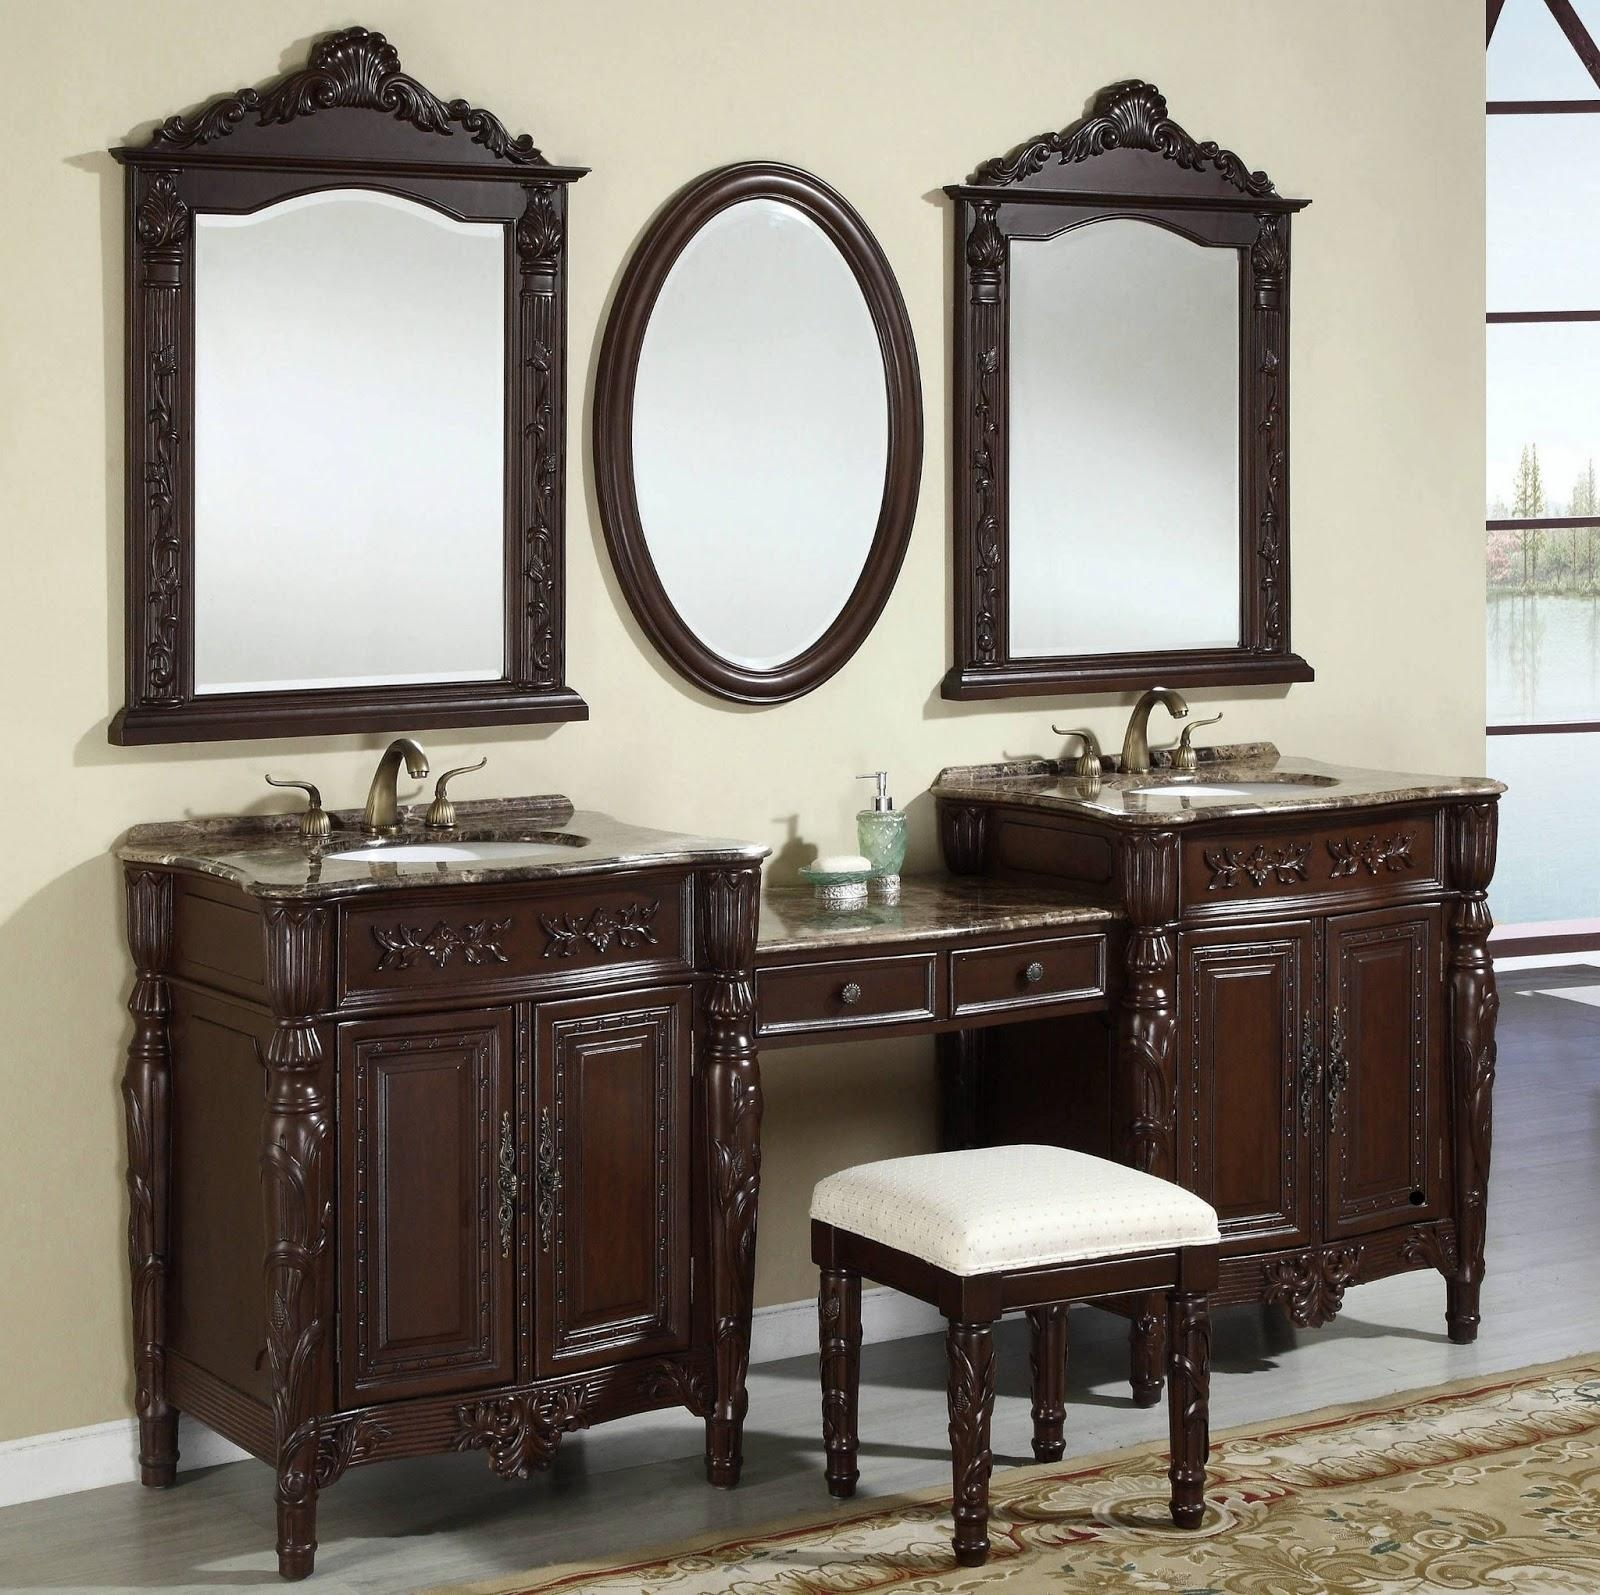 Fresh Bathroom Vanity Mirrors Canada #15153 Throughout Decorative Mirrors For Bathroom Vanity (Image 18 of 20)